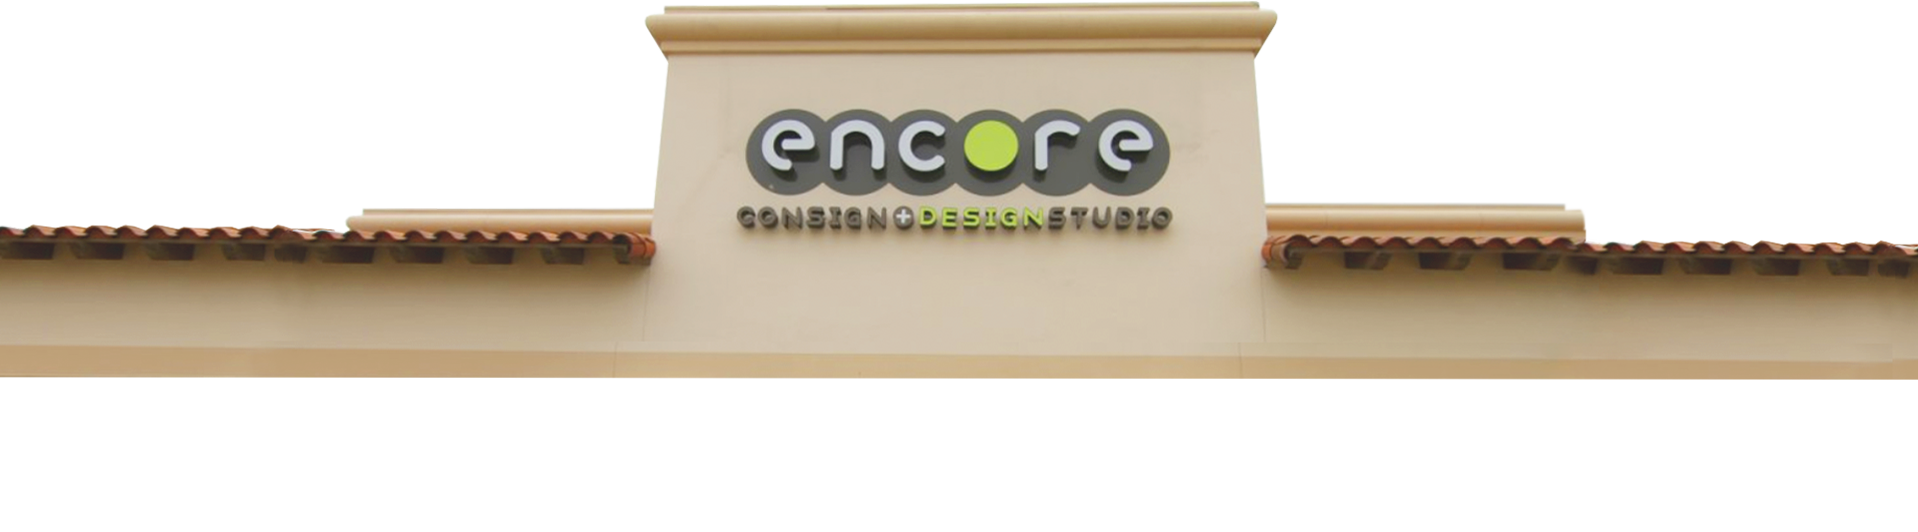 Encore Consignment Furniture Storefront